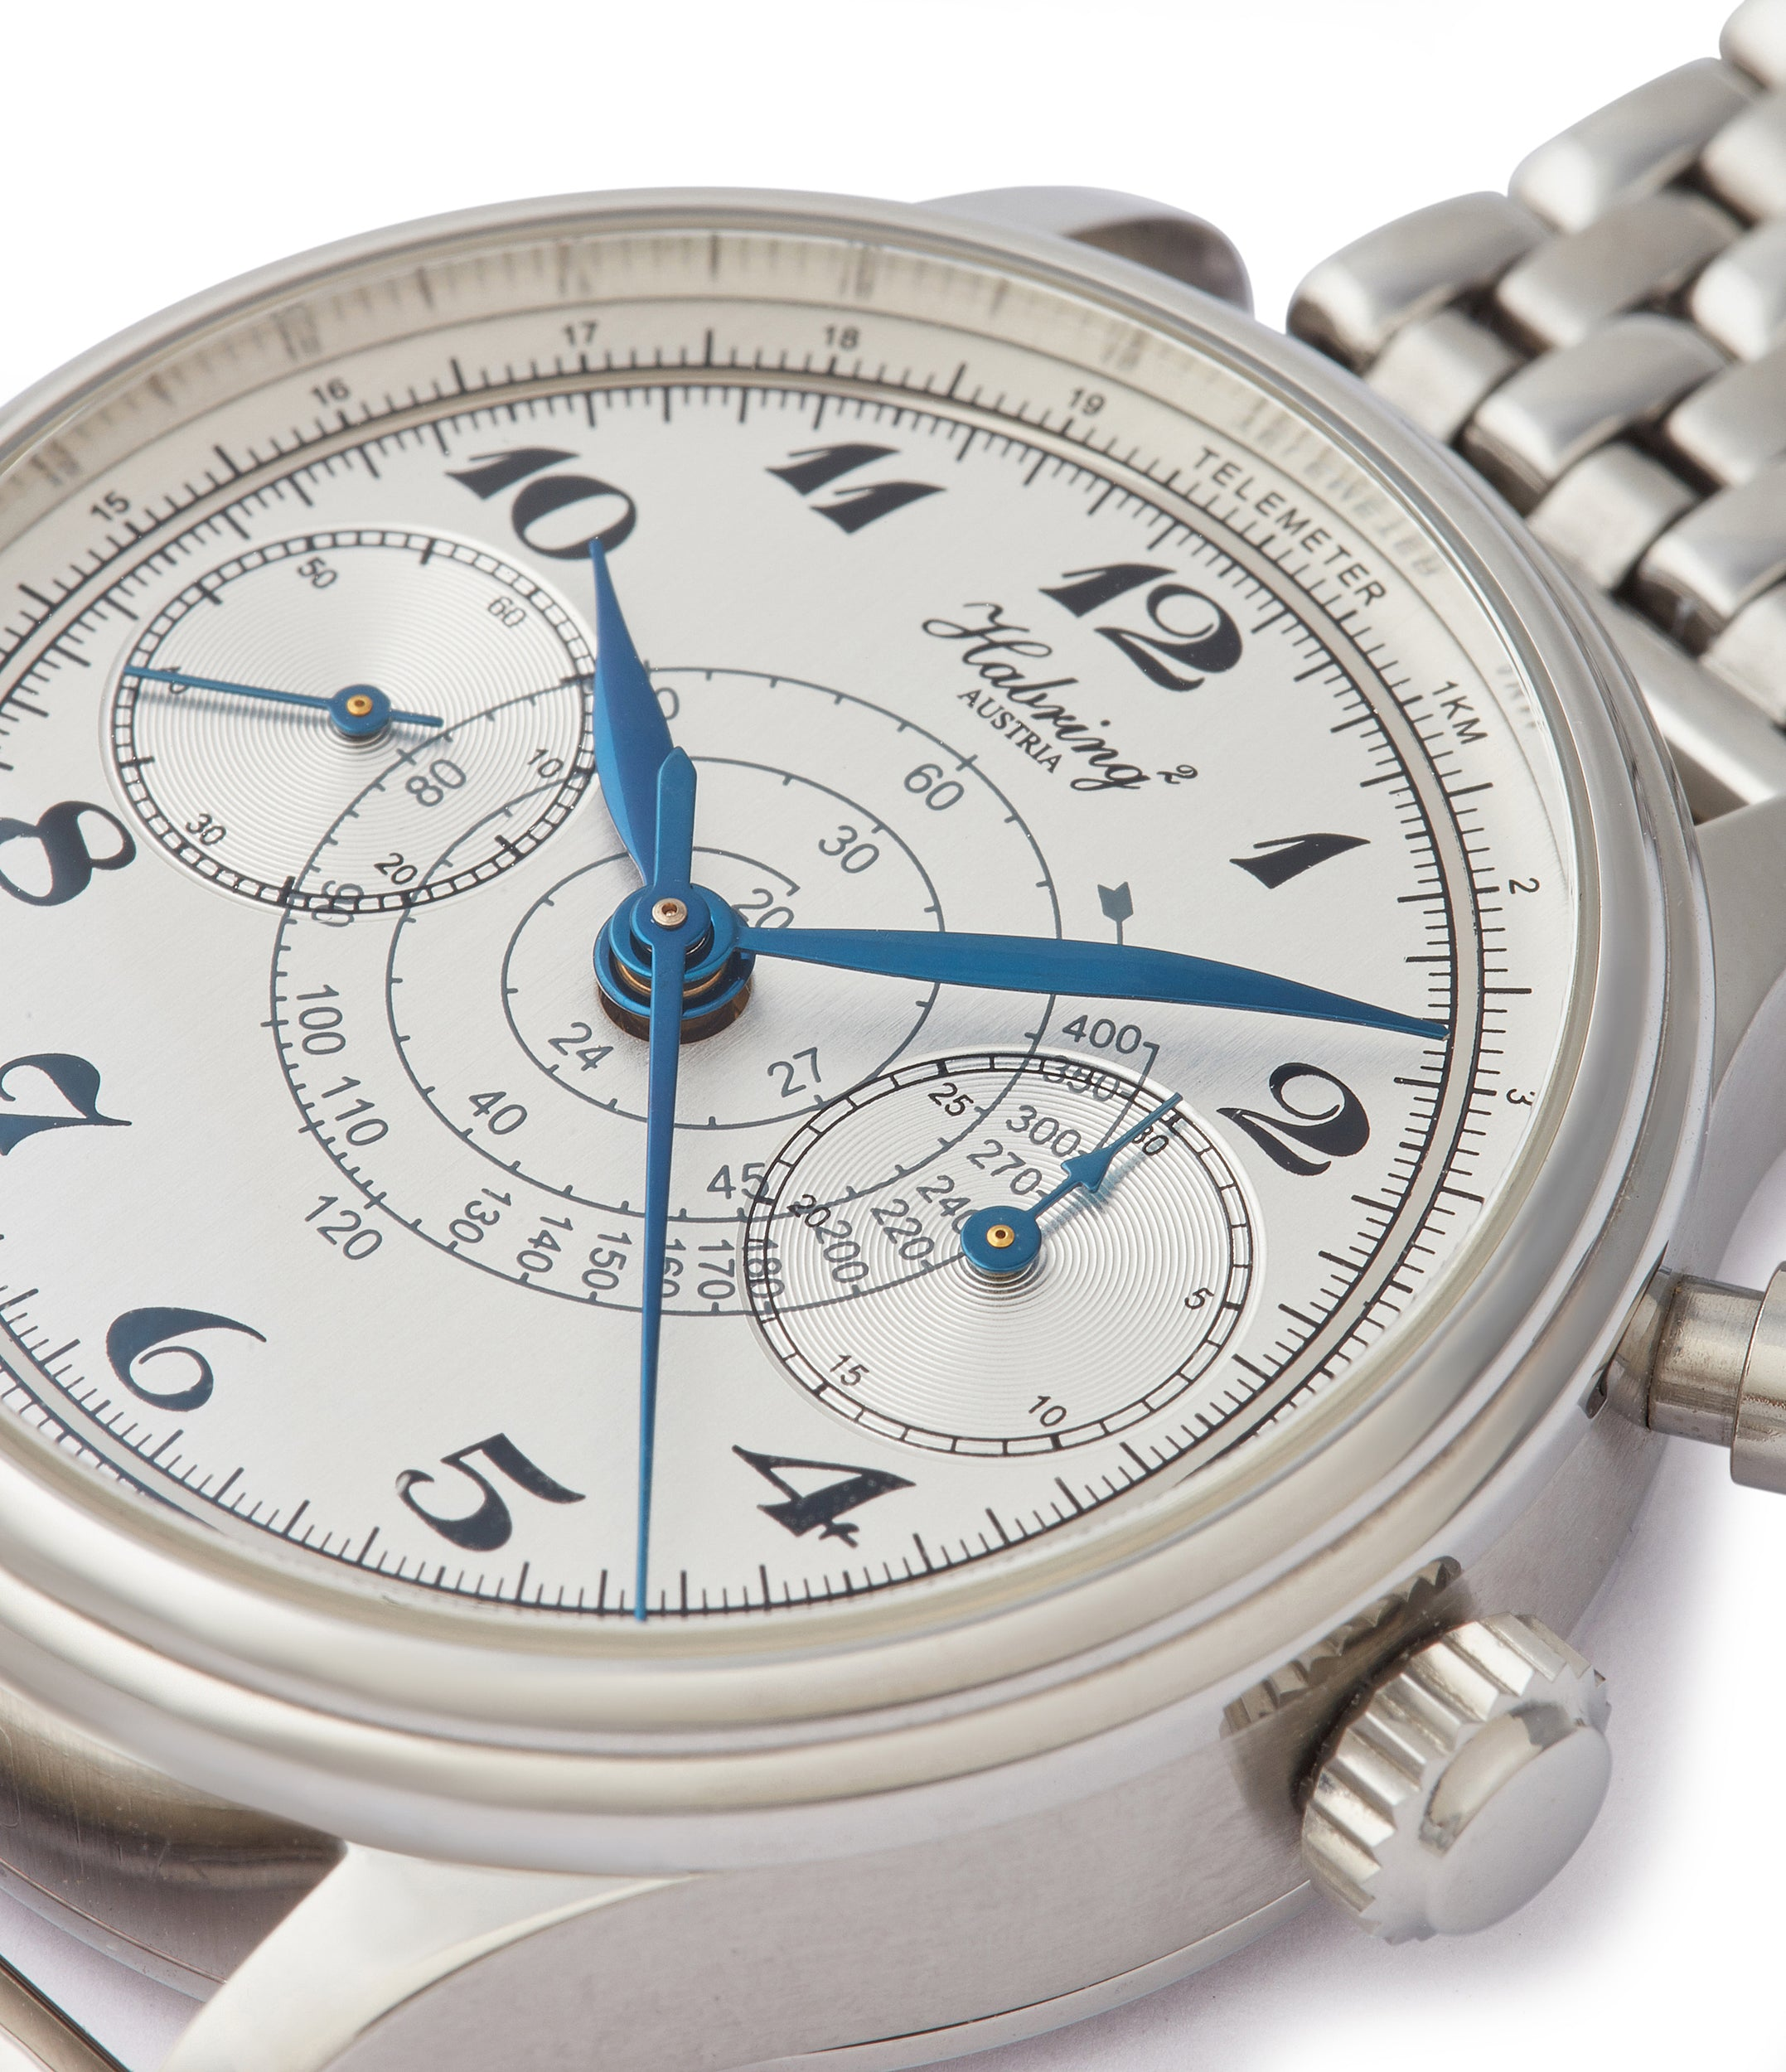 Monopusher Chronograph | Japan Edition